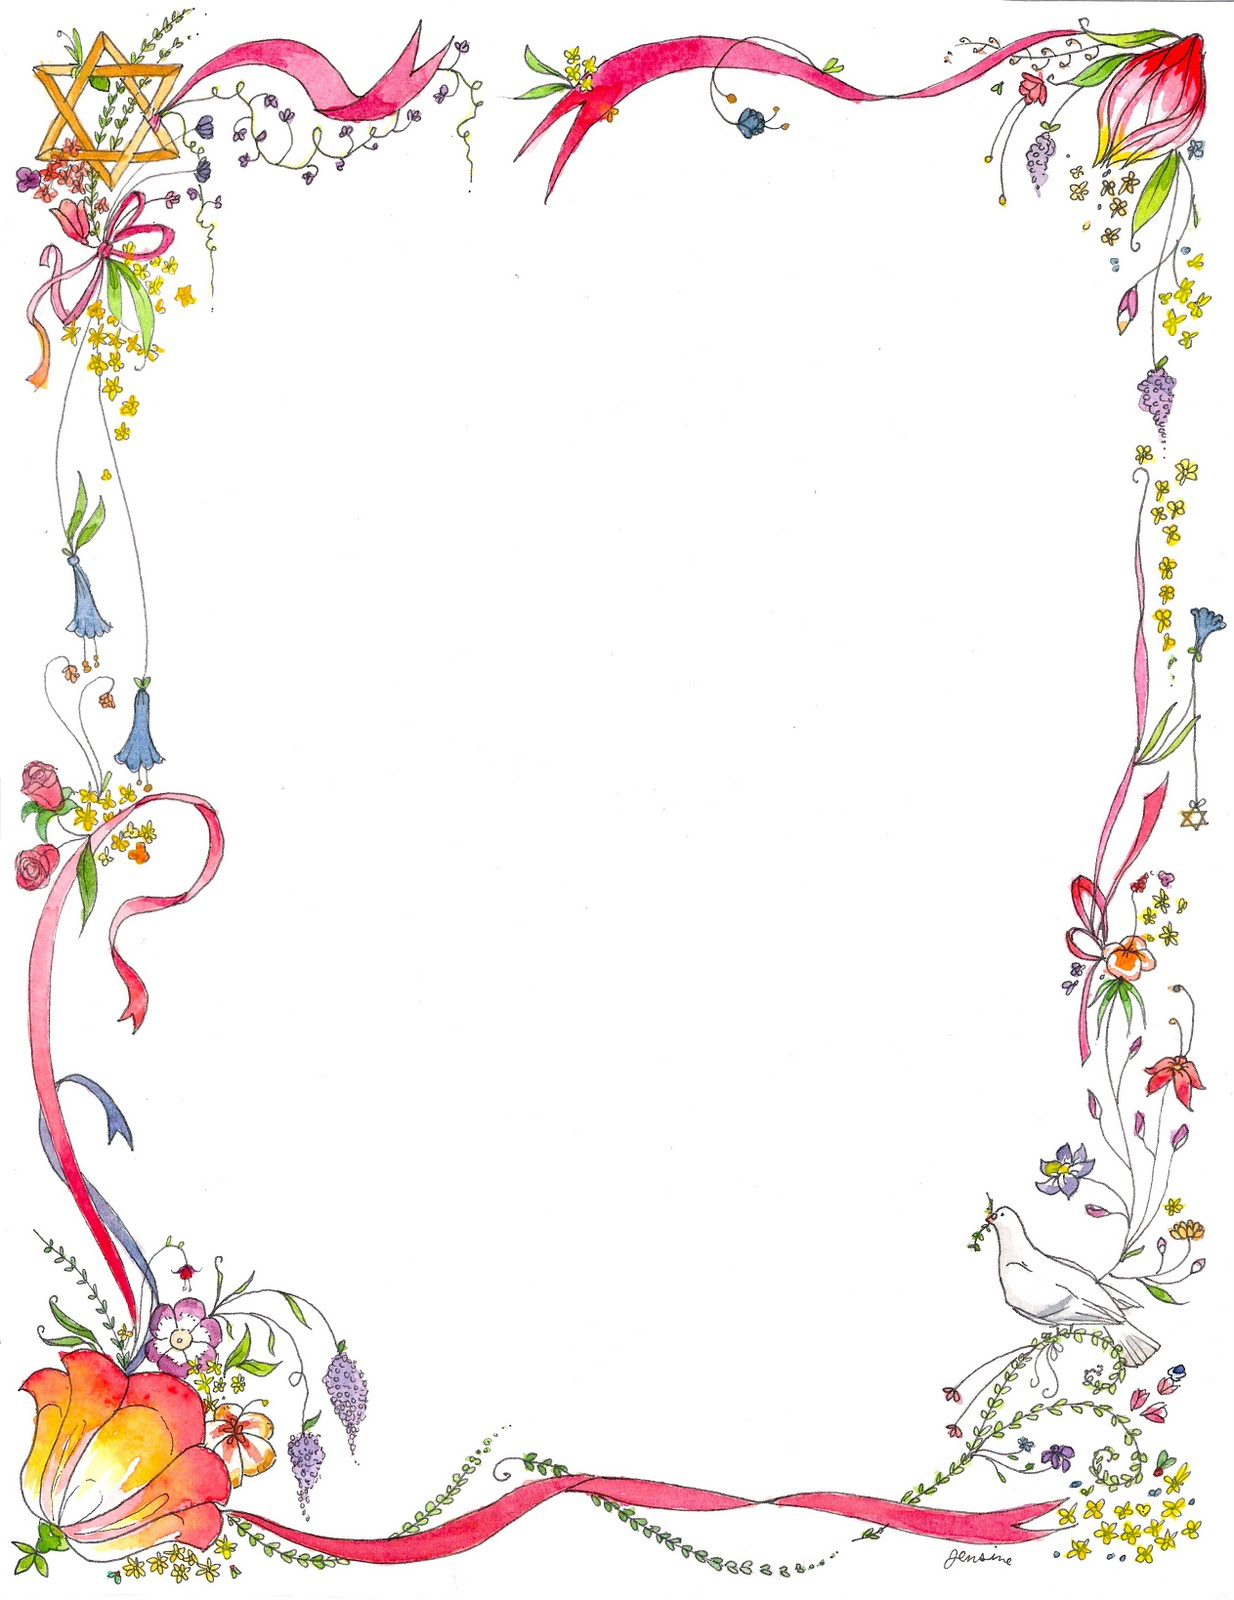 Before beginning the design phase of a job, it is helpful to create a graphic design project outline. Border Design For Project Cerel